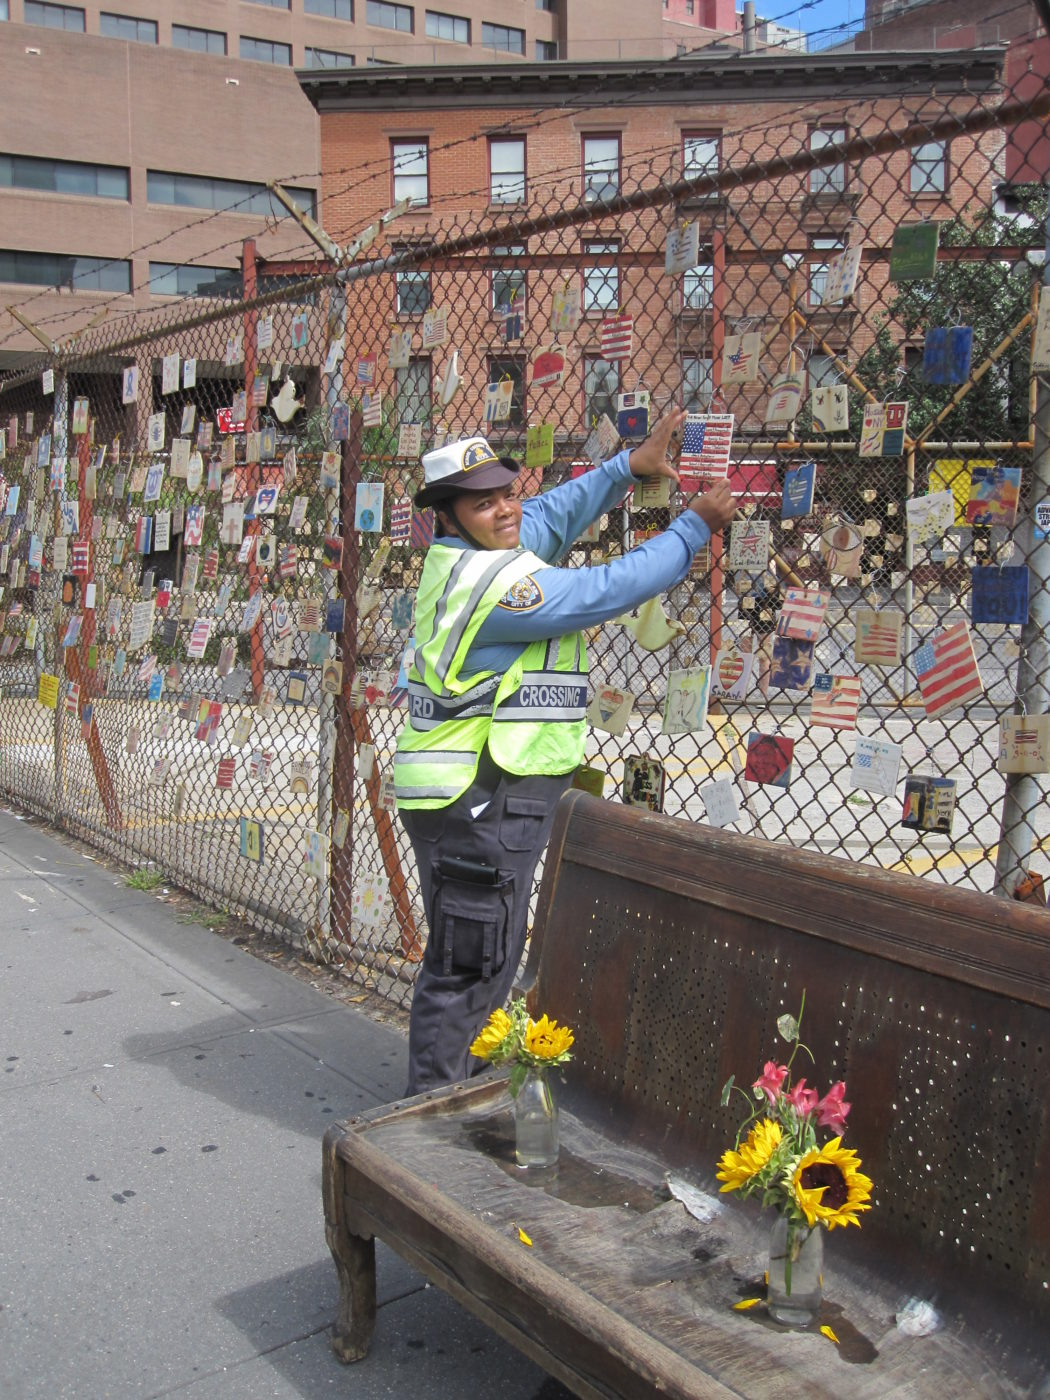 NYPD Helping to reinstall 9-11 Tiles 09_07_2011.JPG